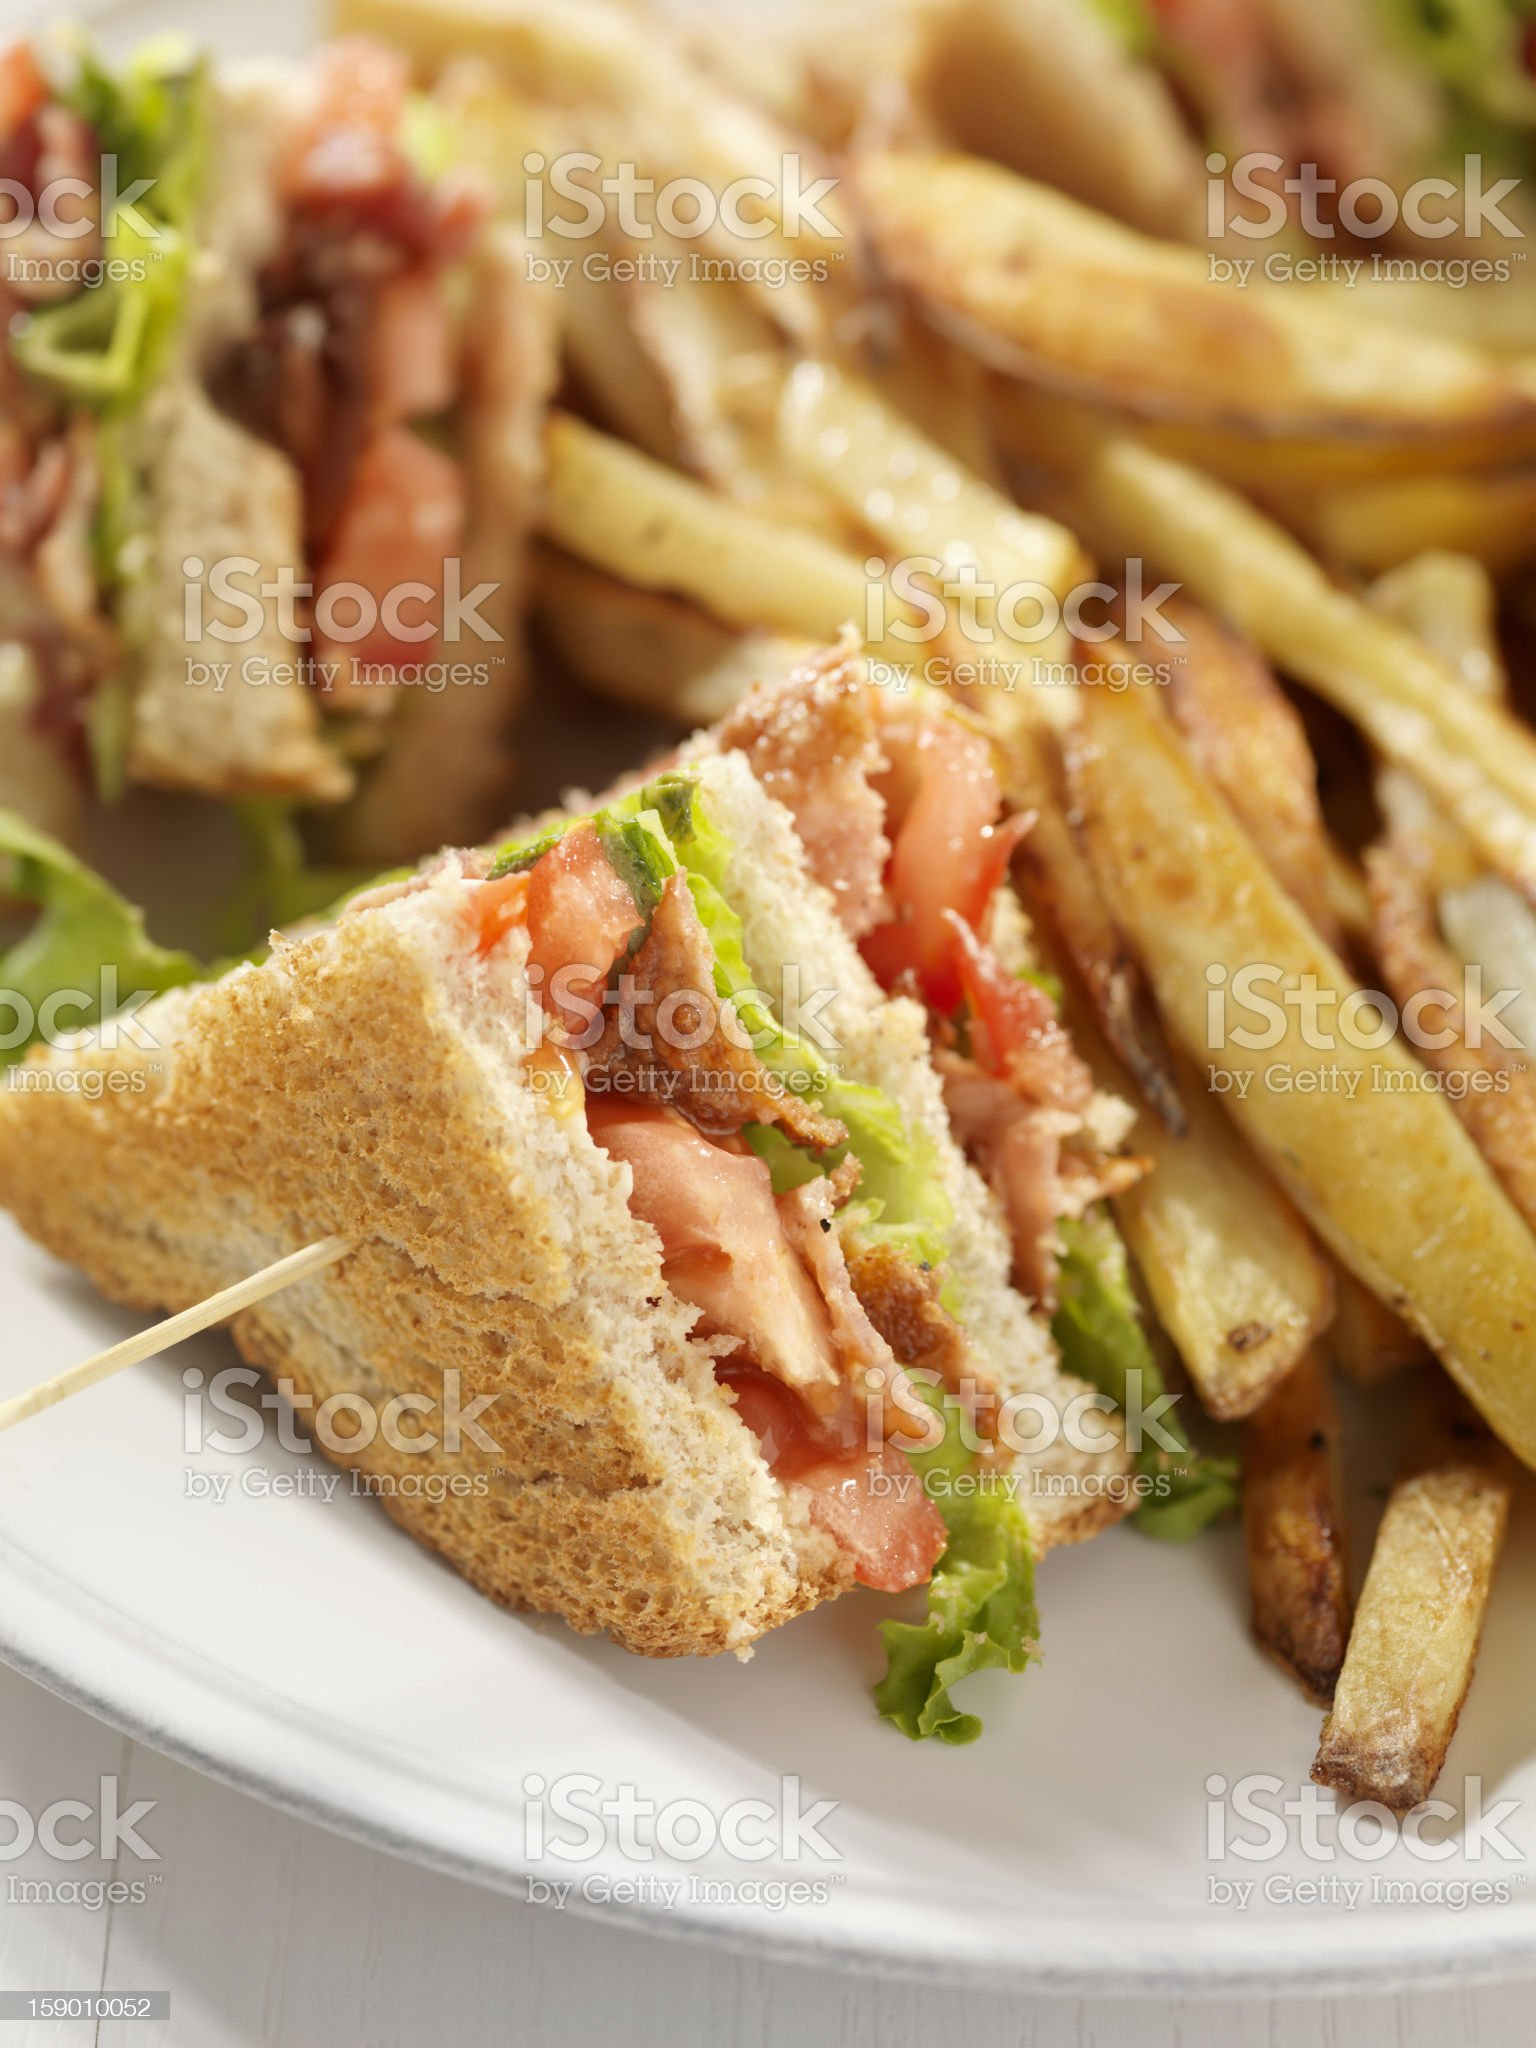 BLT Club House Sandwich with French Fries royalty-free stock photo